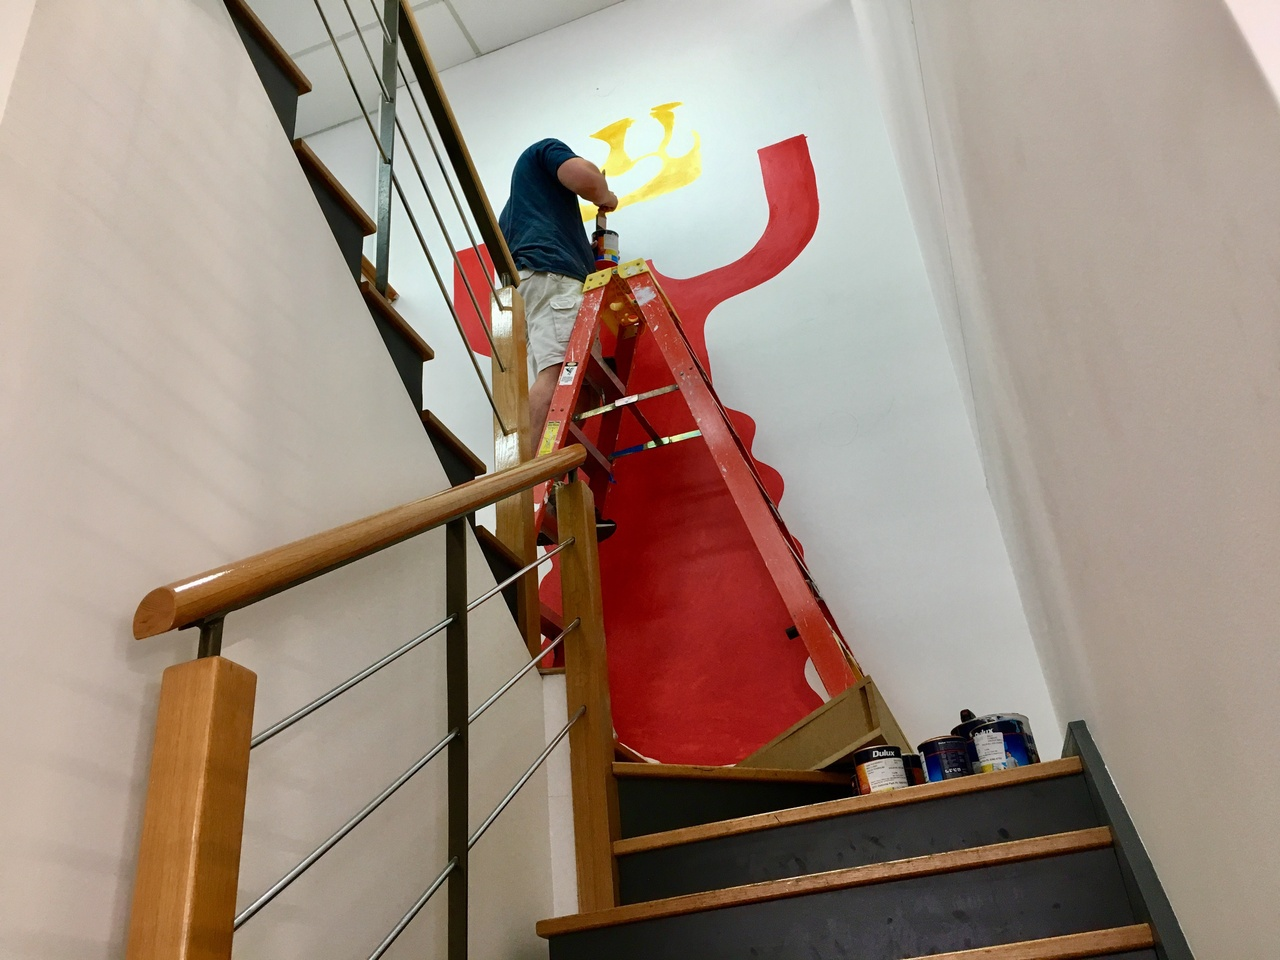 Up the stairs, up the ladder and in progress.